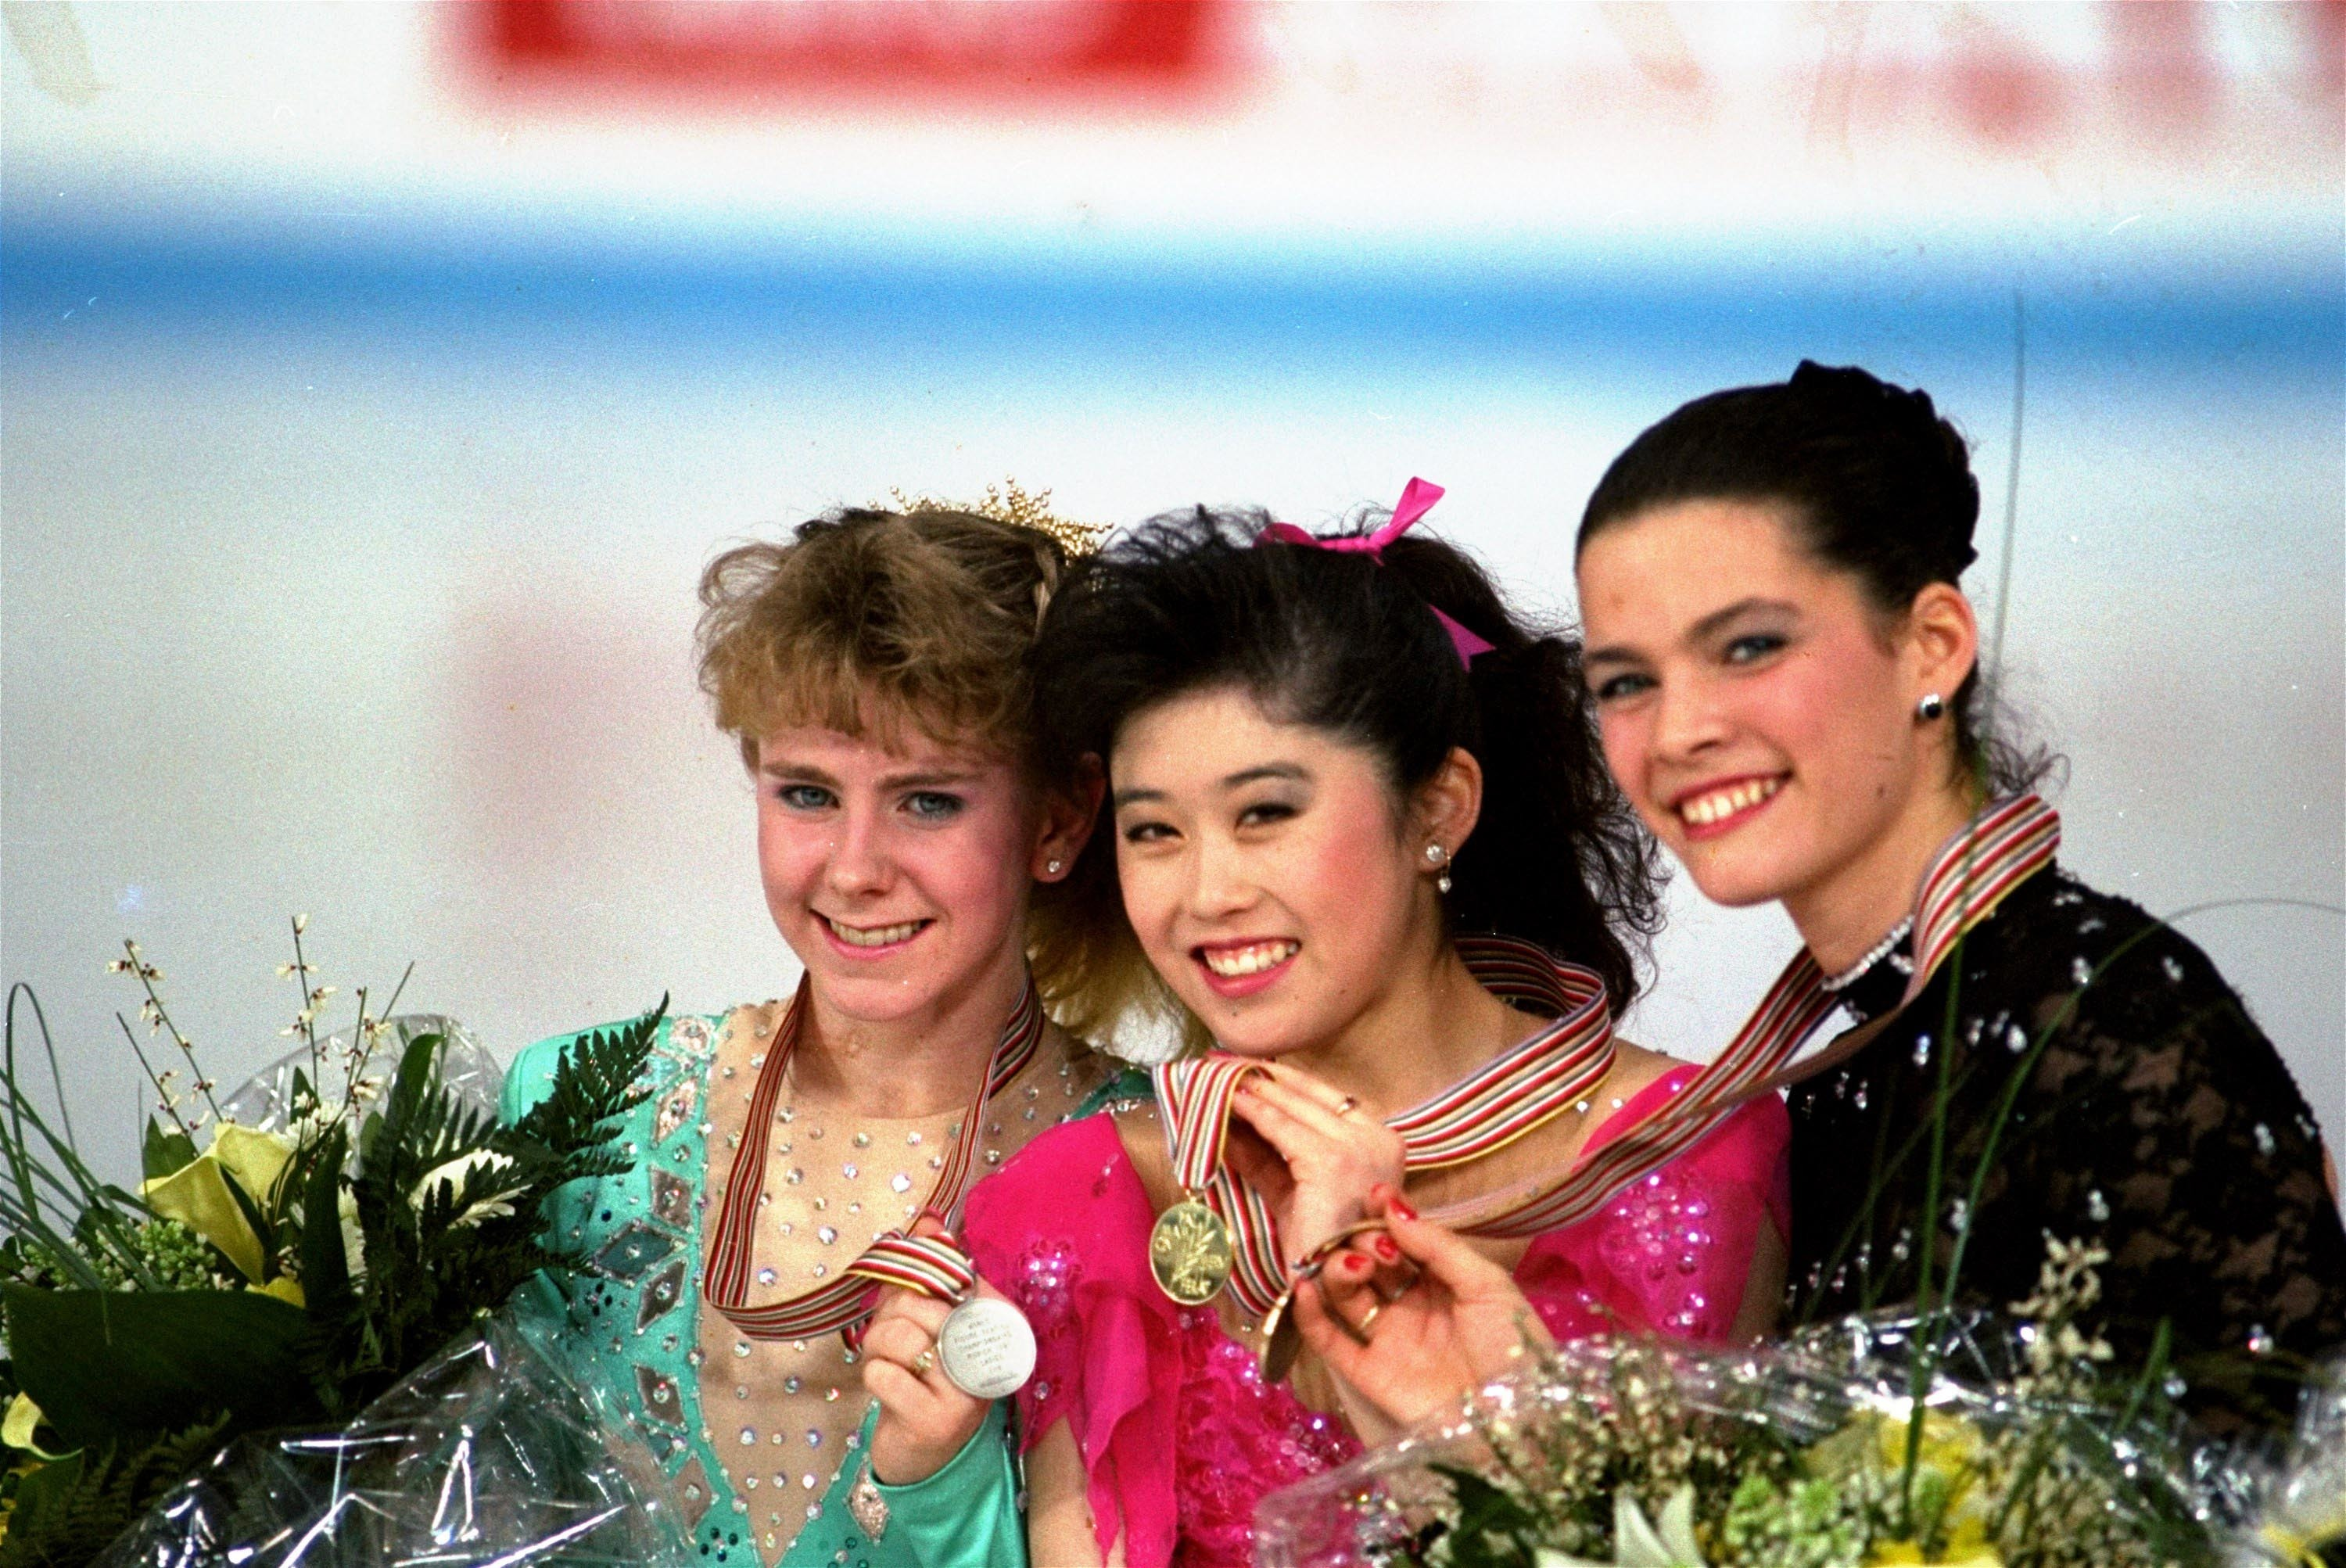 FILE - In this March 12, 1991, file photo, American skaters (L to R) Tonya Harding, silver; Kristi Yamaguchi, gold; and Nancy Kerrigan, bronze, display their medals after the finals of the World Figure Skating Championships in Munich. A run-of-the-mill go